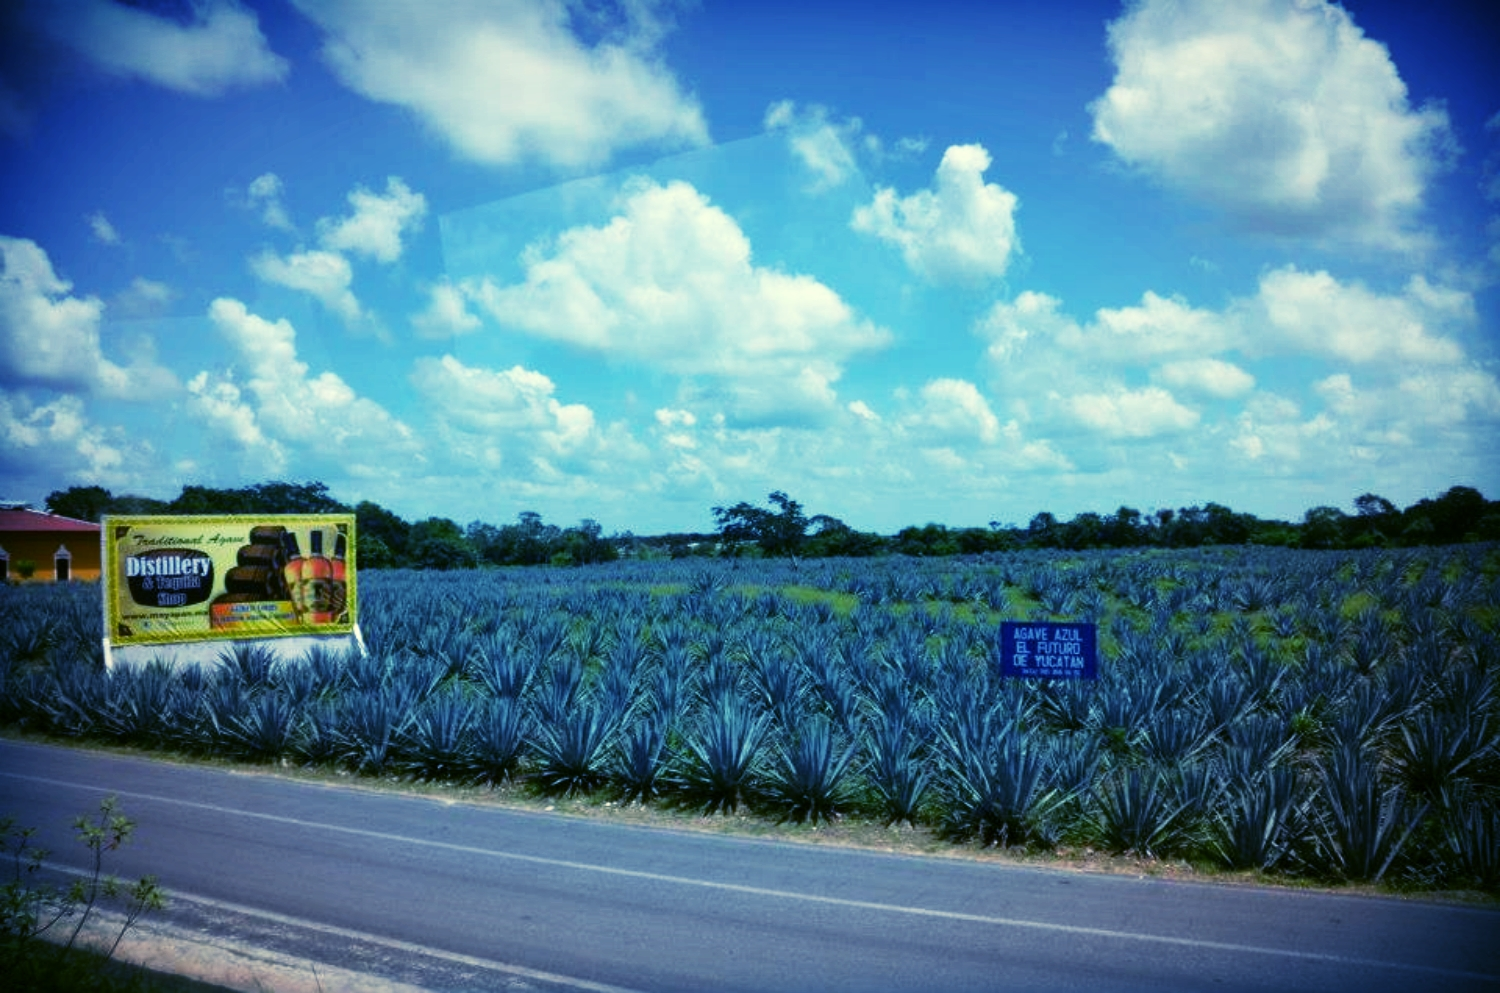 """A source of many epic hangovers, the blue agave is plentiful in the Yucatan Peninsula of Mexico. The sign suggests that this beautiful succulent is the """"future of the Yucatan."""" Let's help the Yucatan; let's drink more tequila!"""